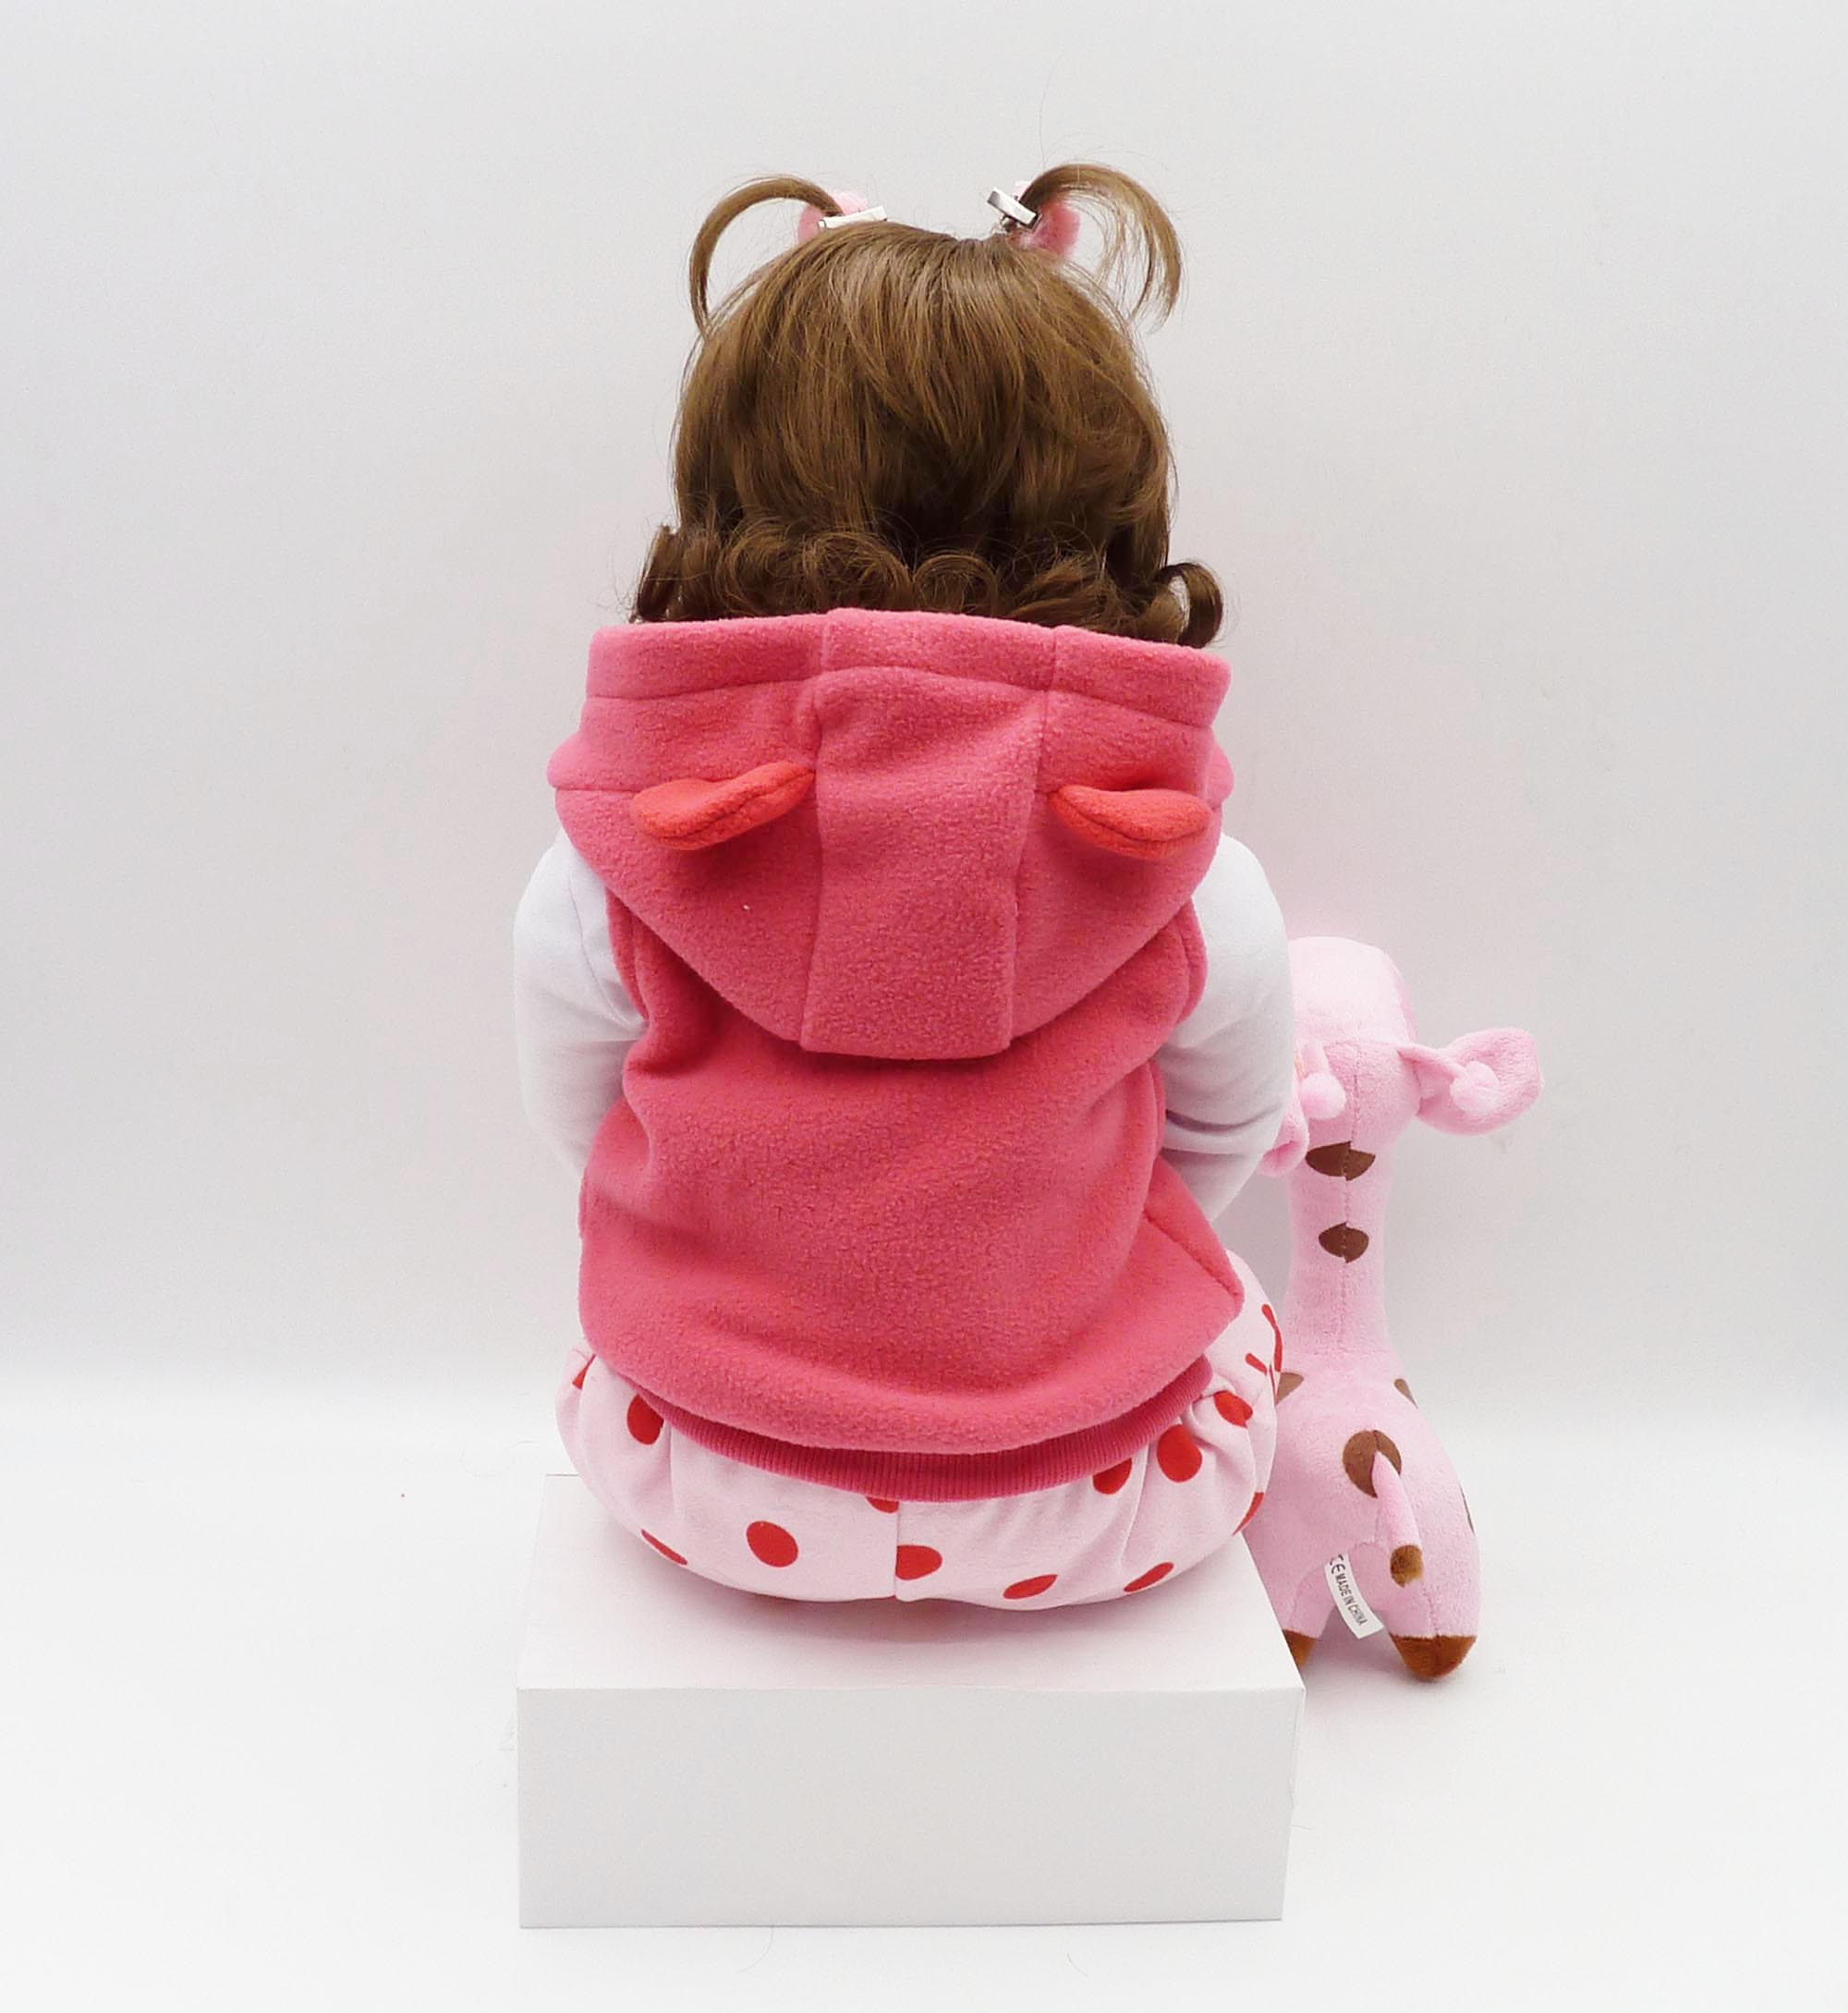 Image 4 - bebe reborn19inch 48cm lifelike doll baby newborn wholesale toys for children Christmas gift and birthday gift doll toys-in Dolls from Toys & Hobbies